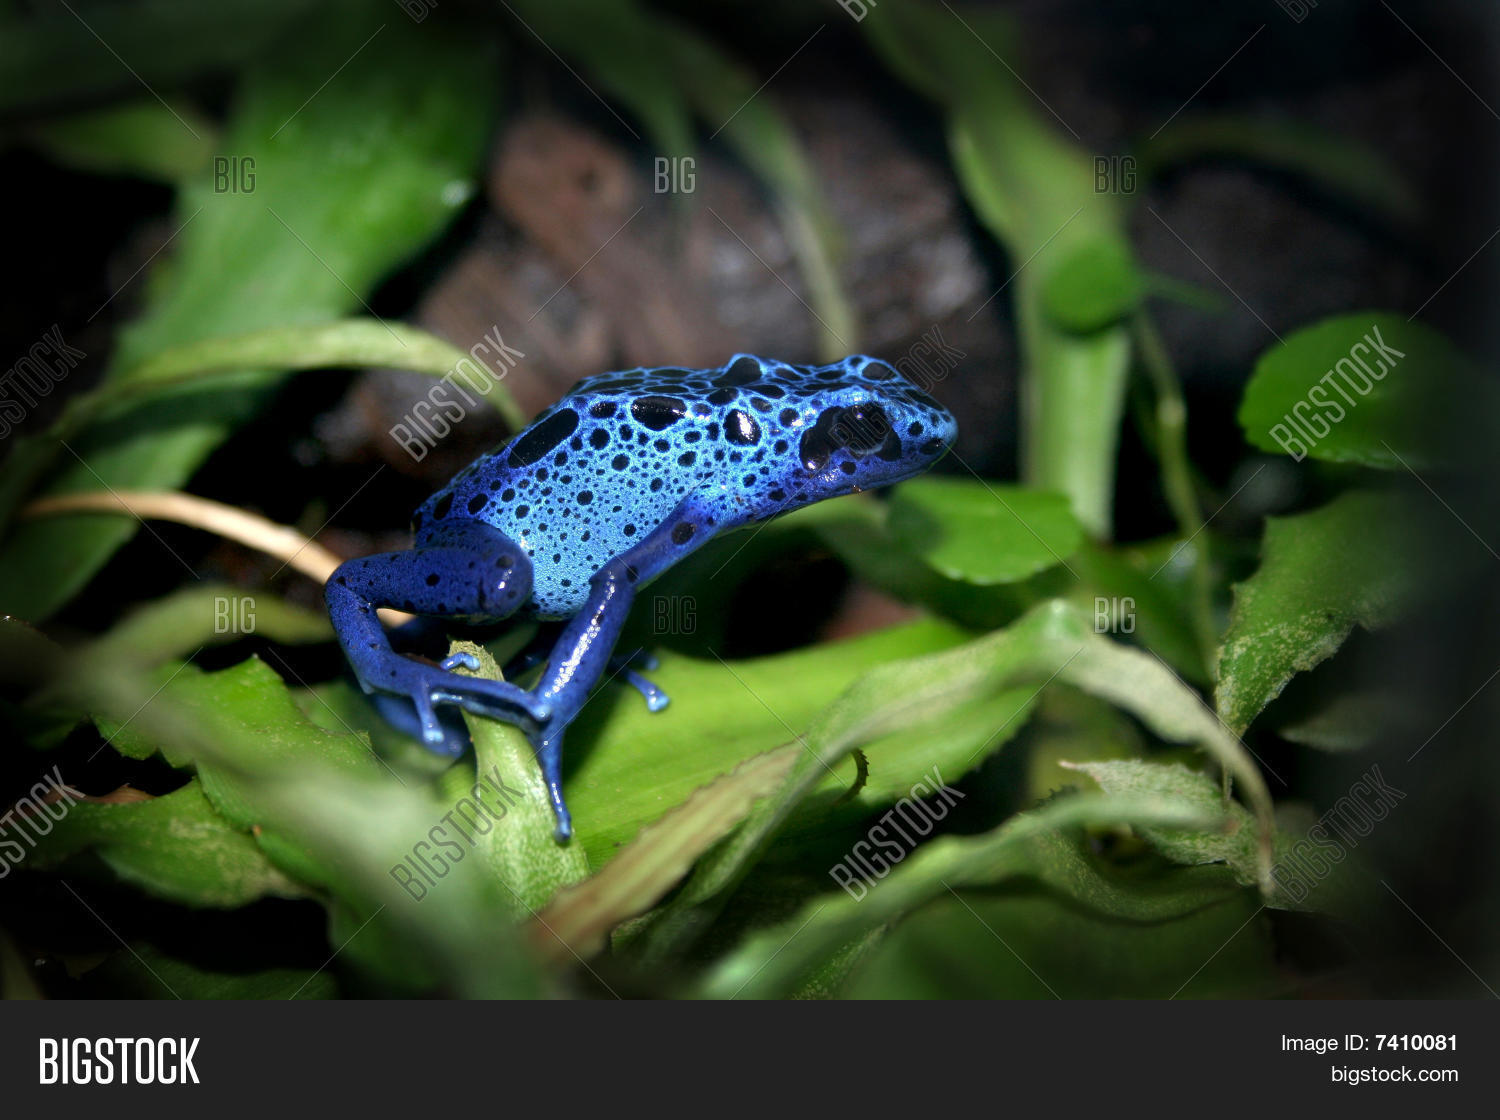 Blue Poison Dart Frog Image Photo Free Trial Bigstock